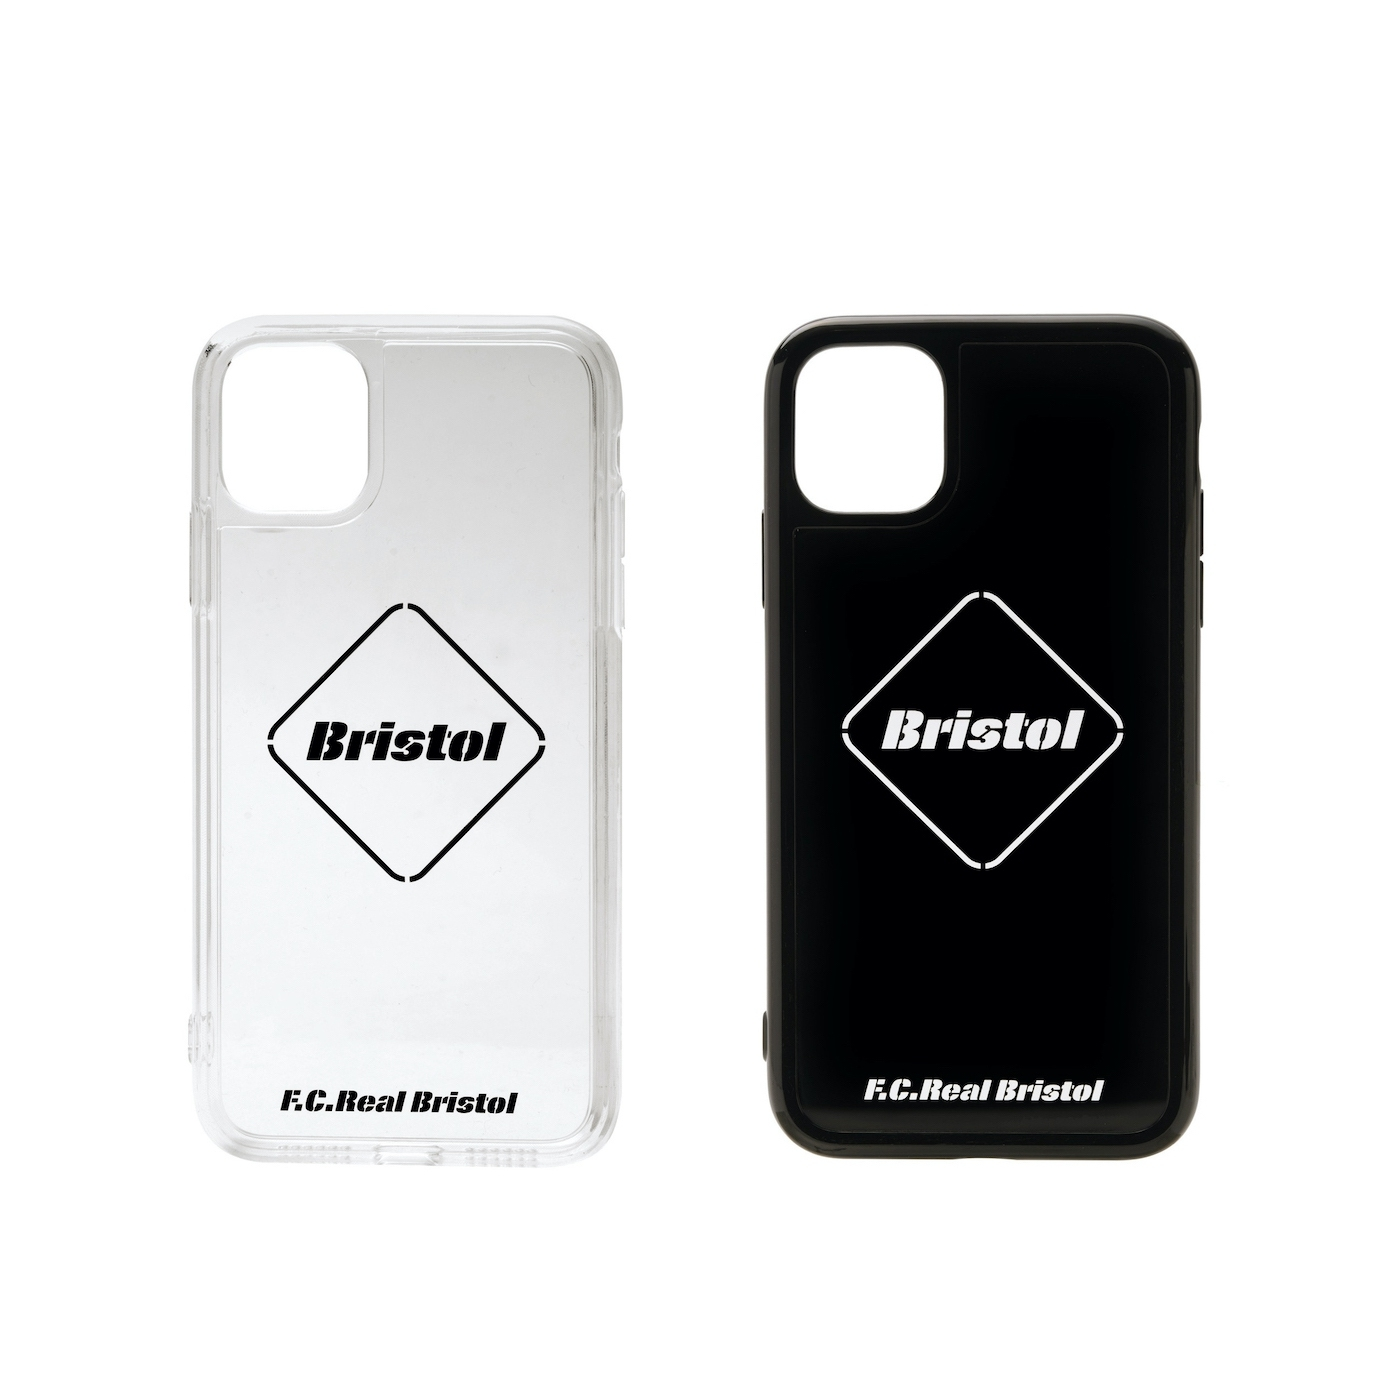 F.C.Real Bristol / EMBLEM PHONE CASE for iPhone 11